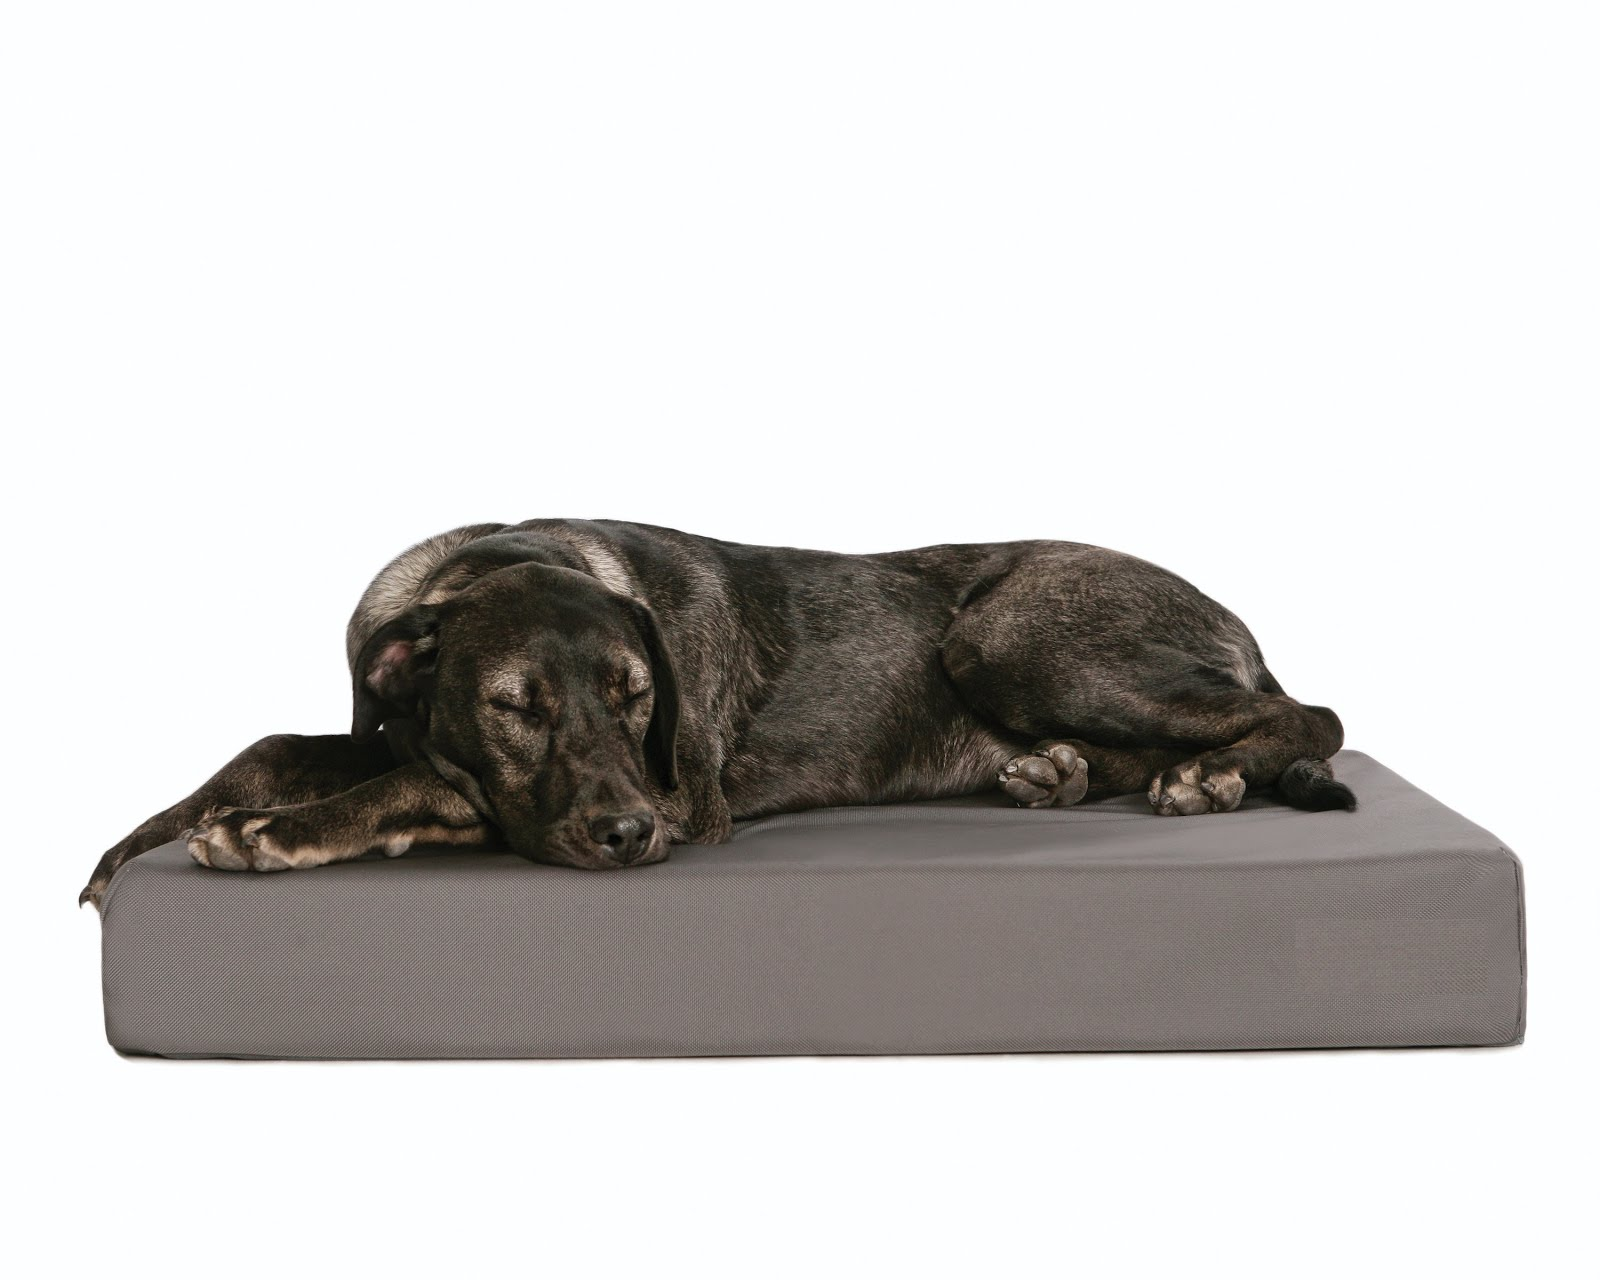 Dog shop indestructible dog beds for chew resistant dogs for Sound proof dog bed